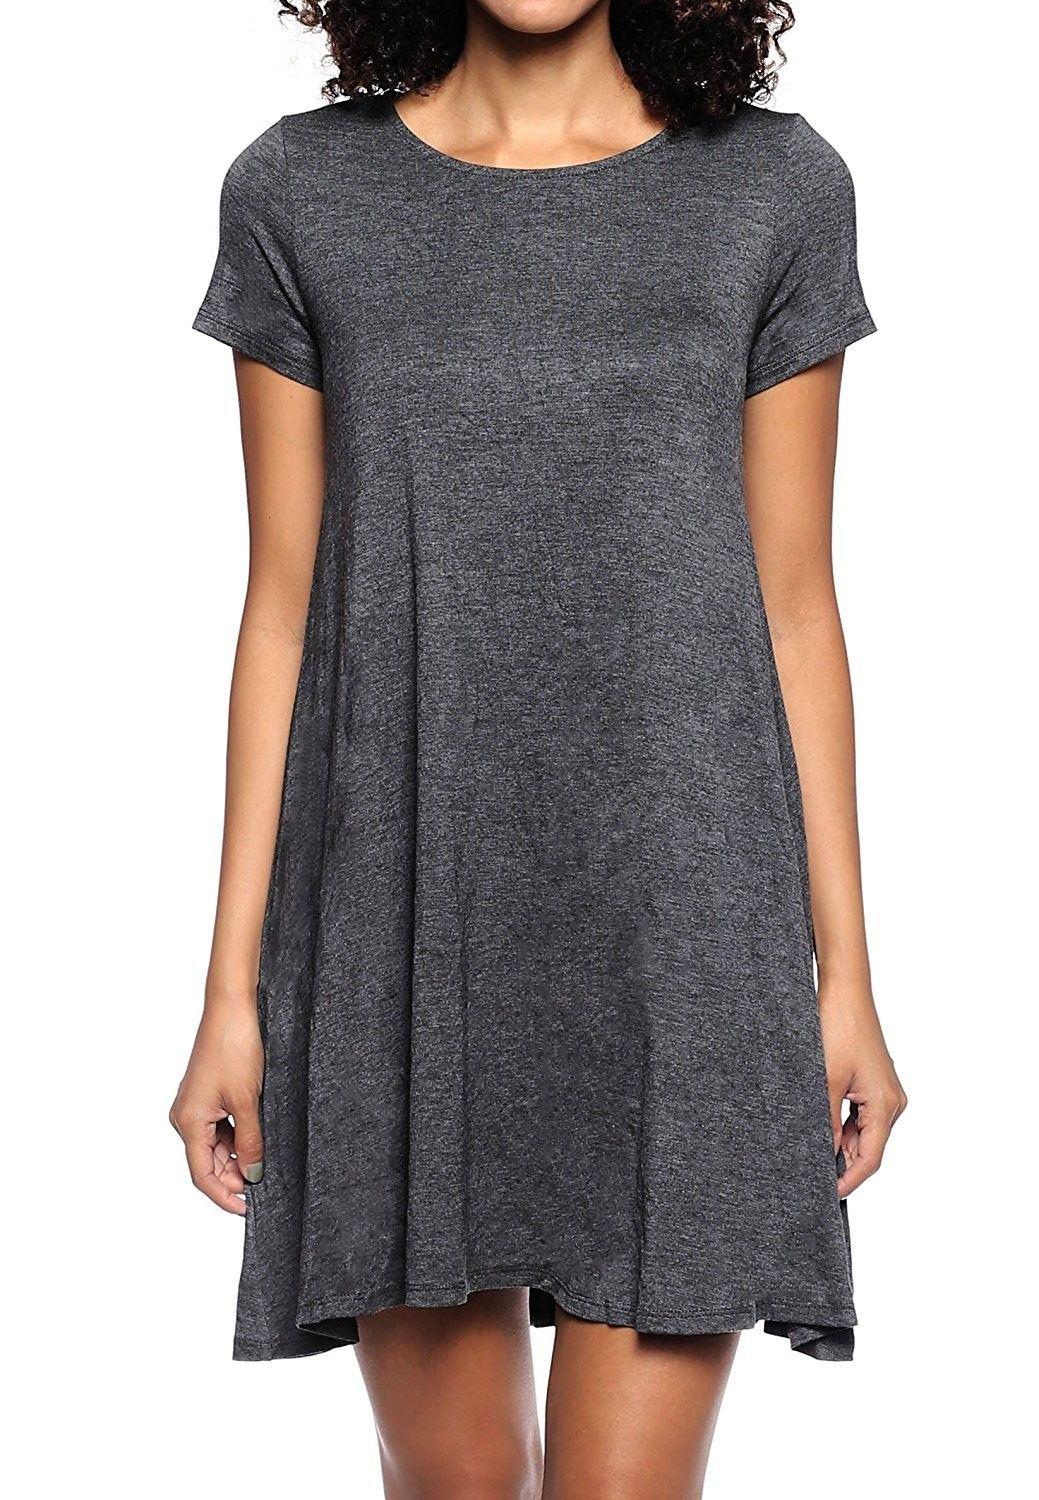 00a18082ce218 Women's Clothing, Dresses, Casual, Stretchy Flowy Loose Fit Tunic Casual  Beach Regular Plus Size Dresses - Ss Charcoal - CH12L9R5T0P #fashion #dress  #women ...